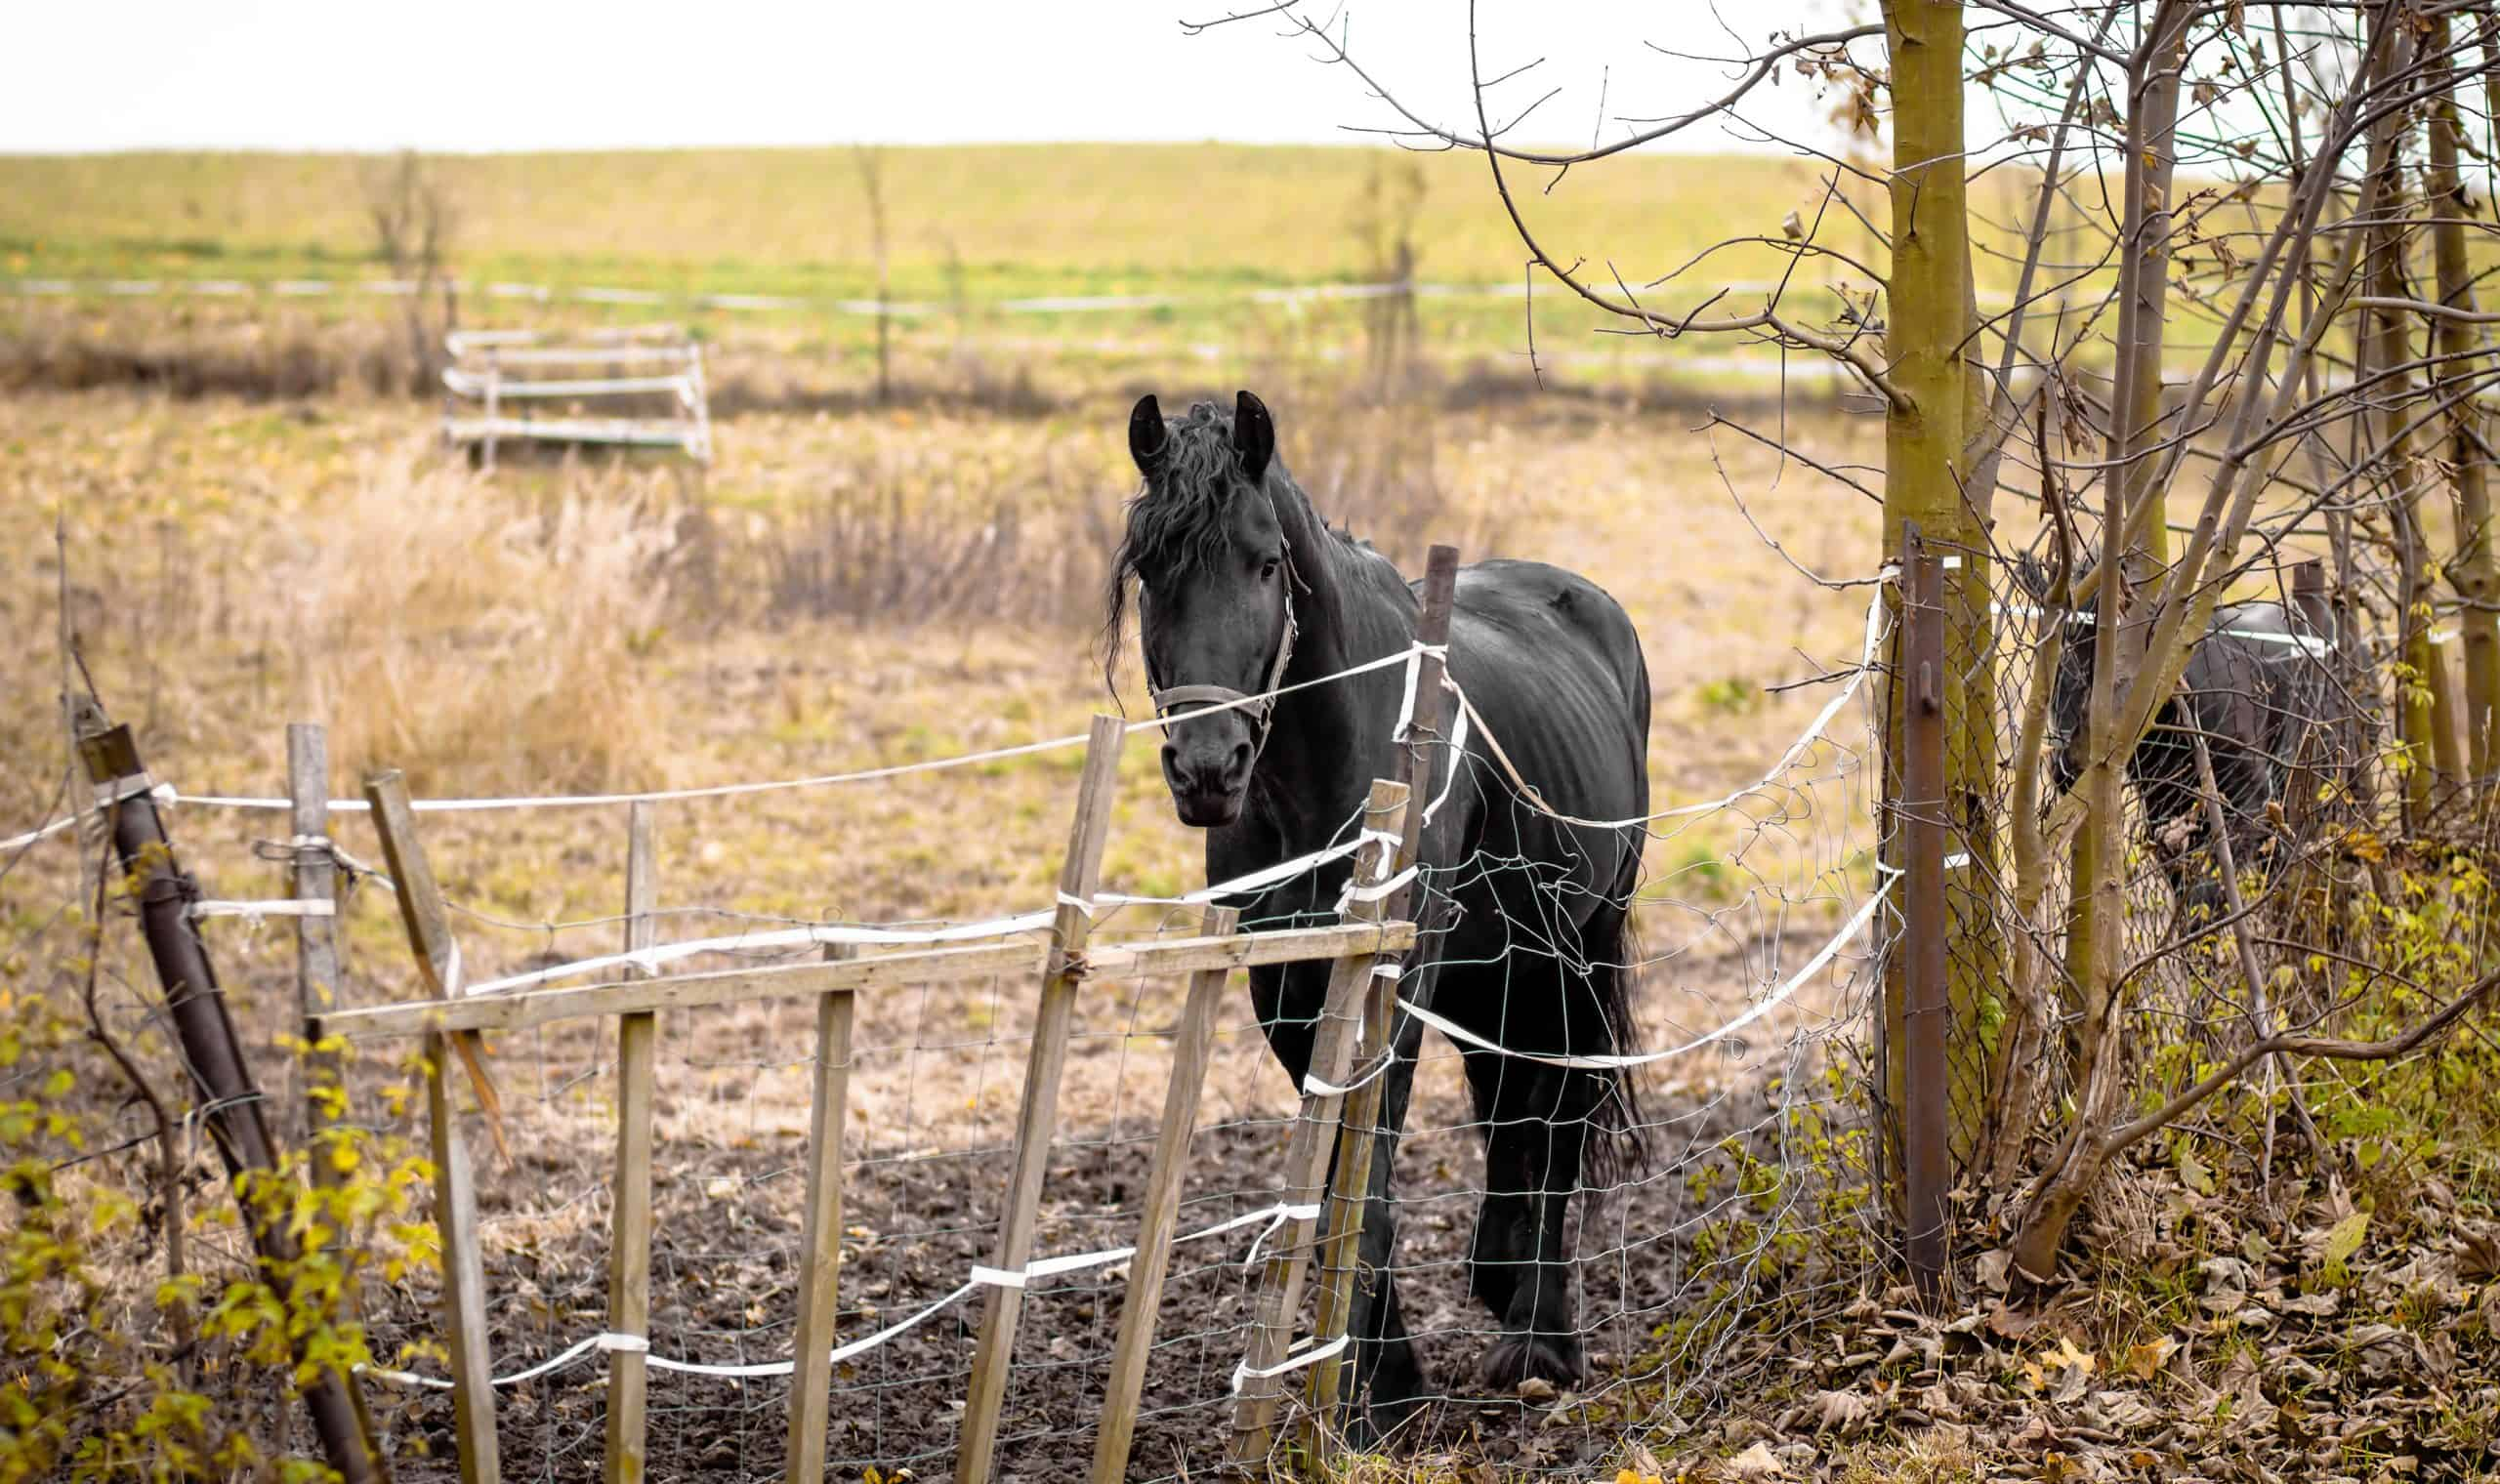 Skinny Horse outside in fenced yard area with ribs showing